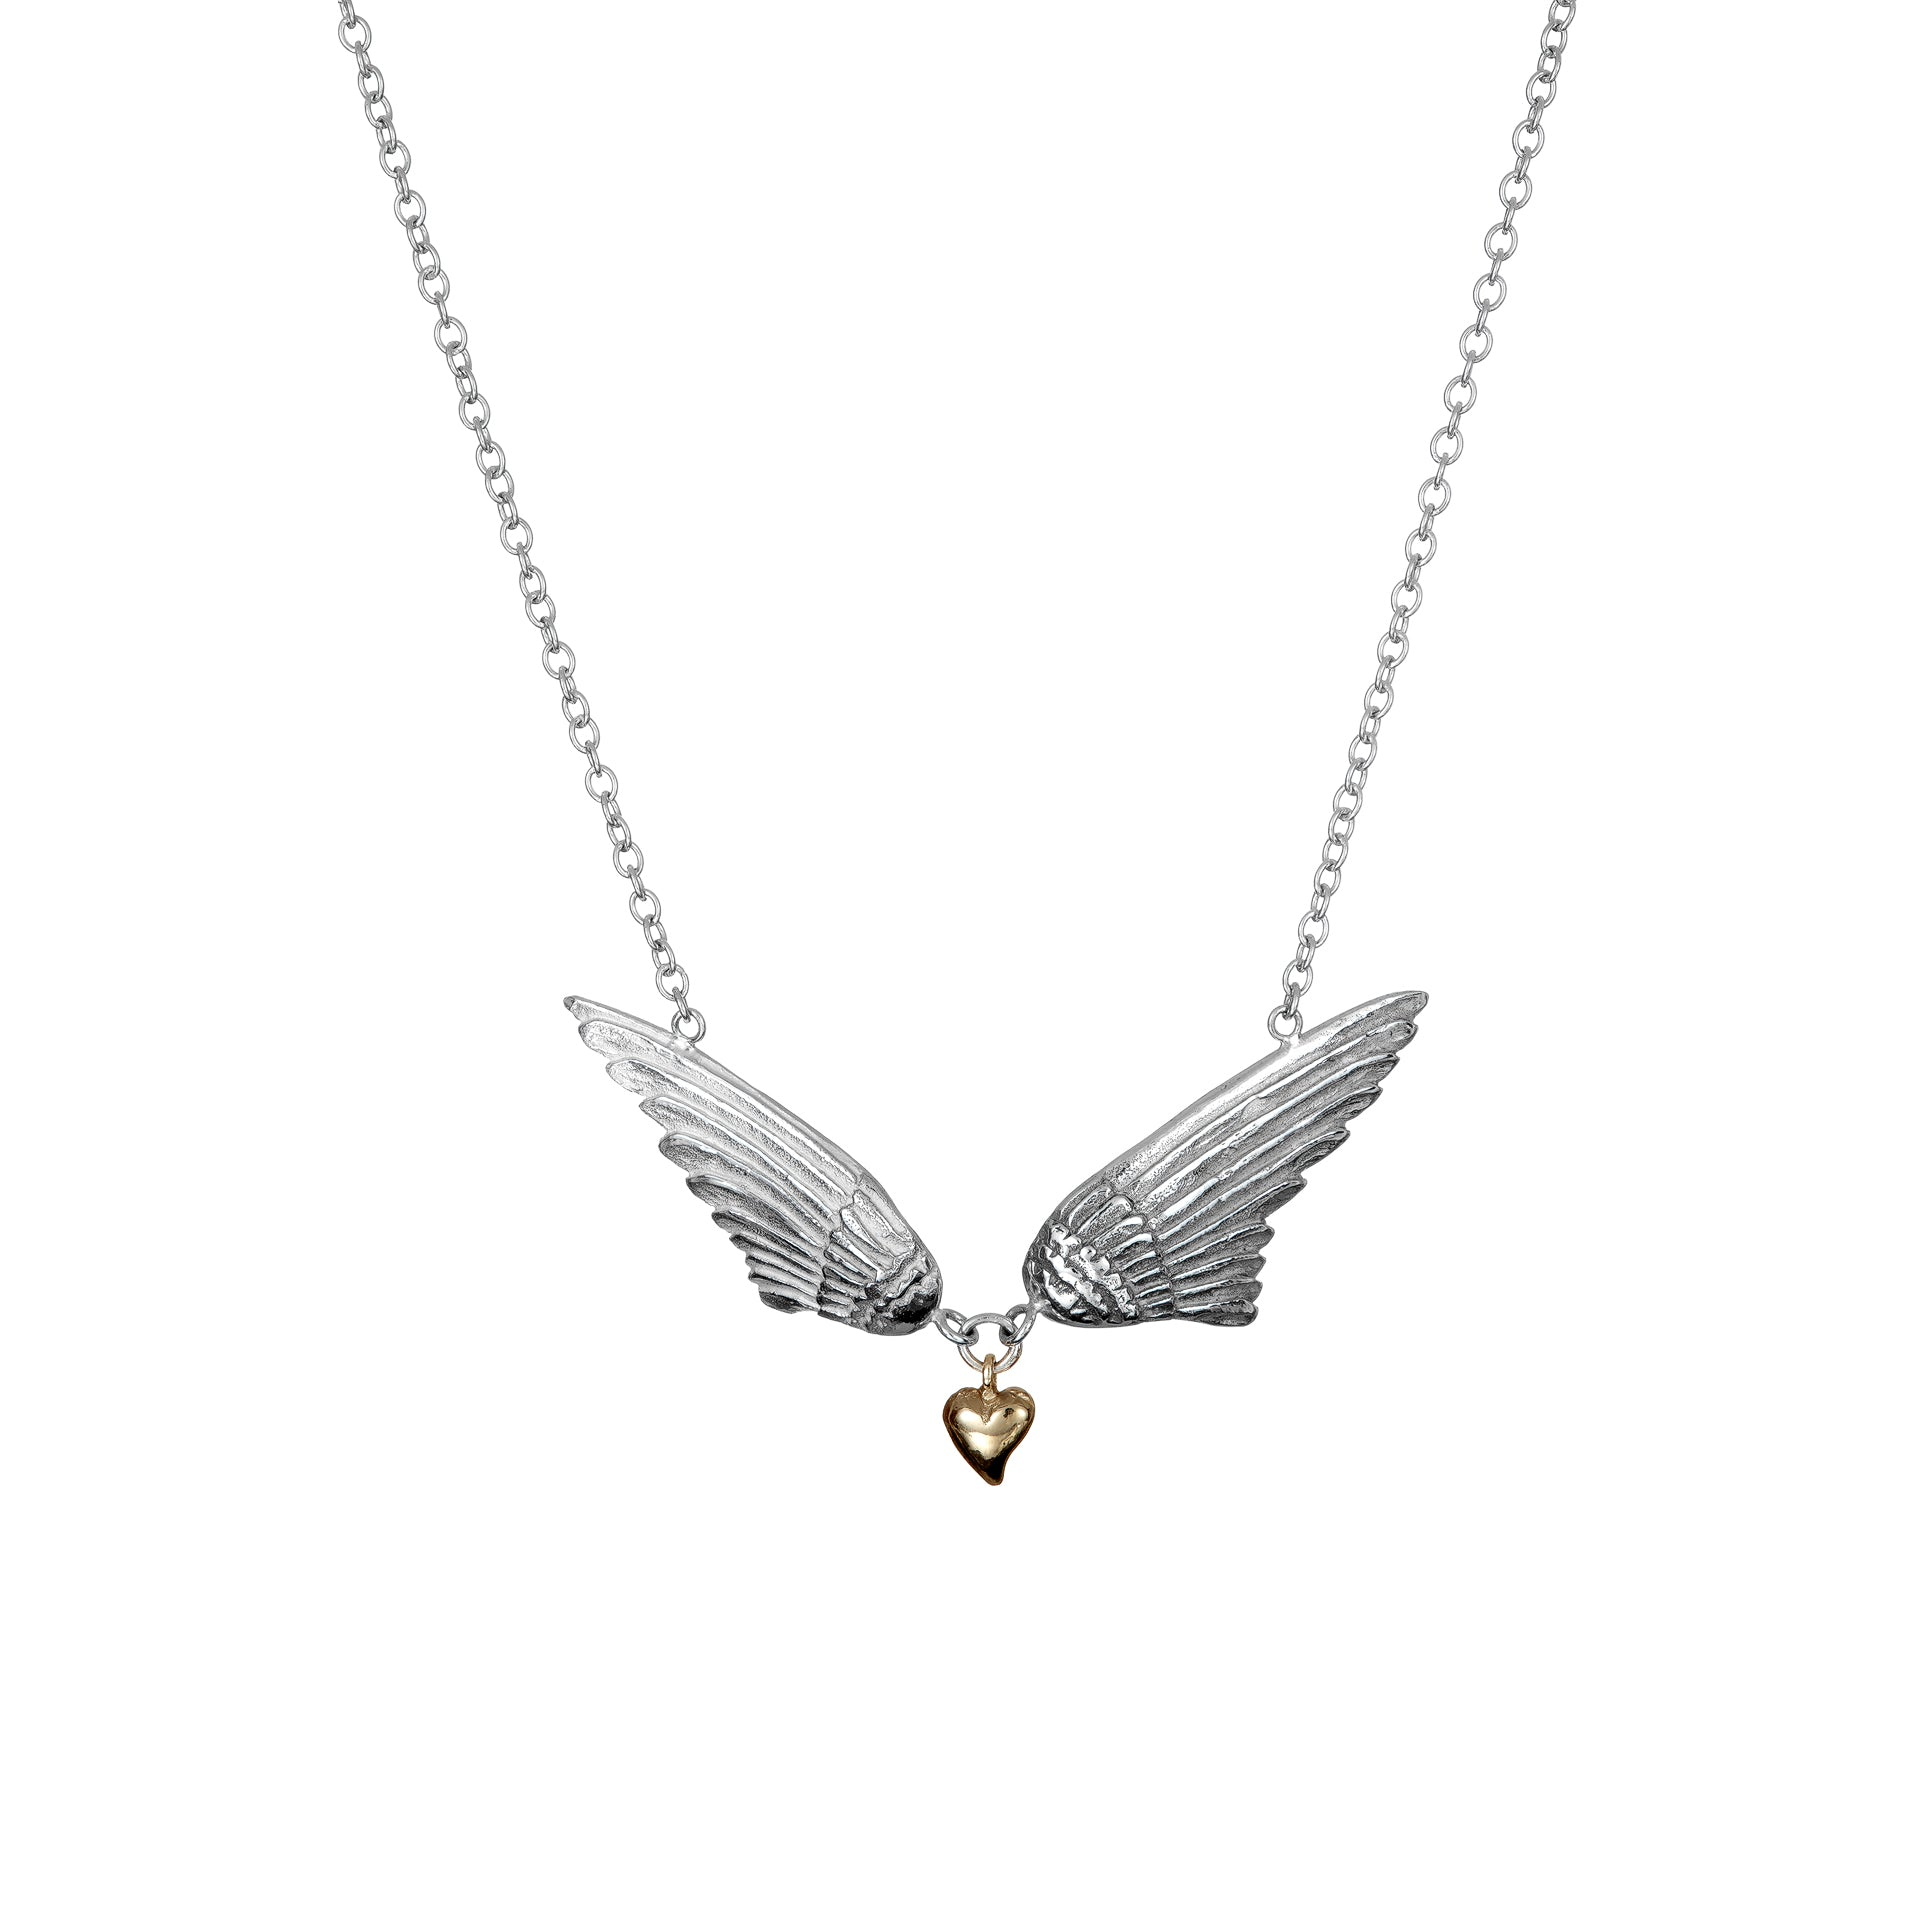 Love of the Angels Pendant